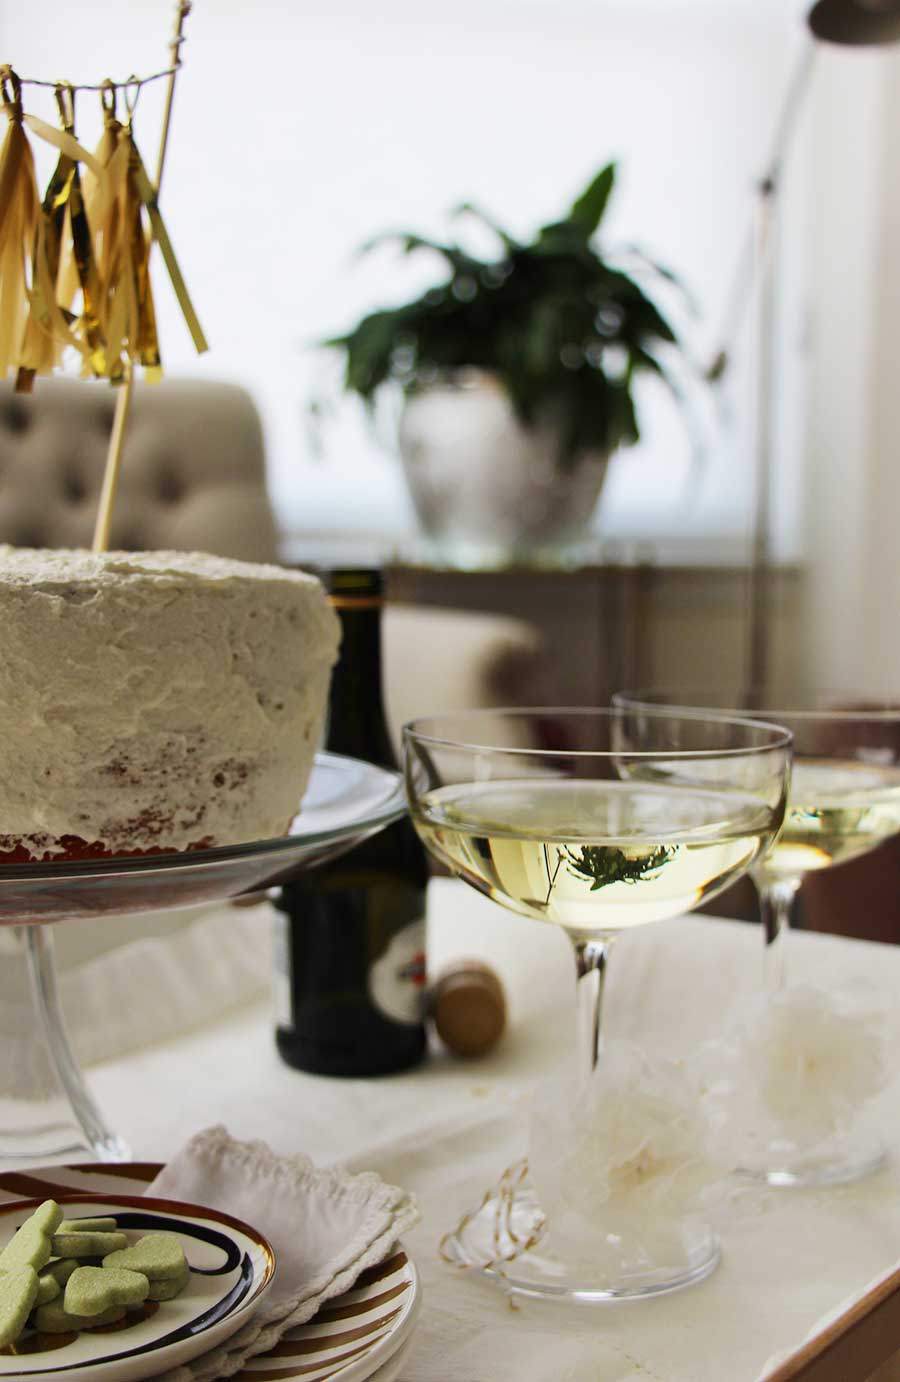 birthday-set-up-fab-hostess-champagne-toast-and-cake.jpg